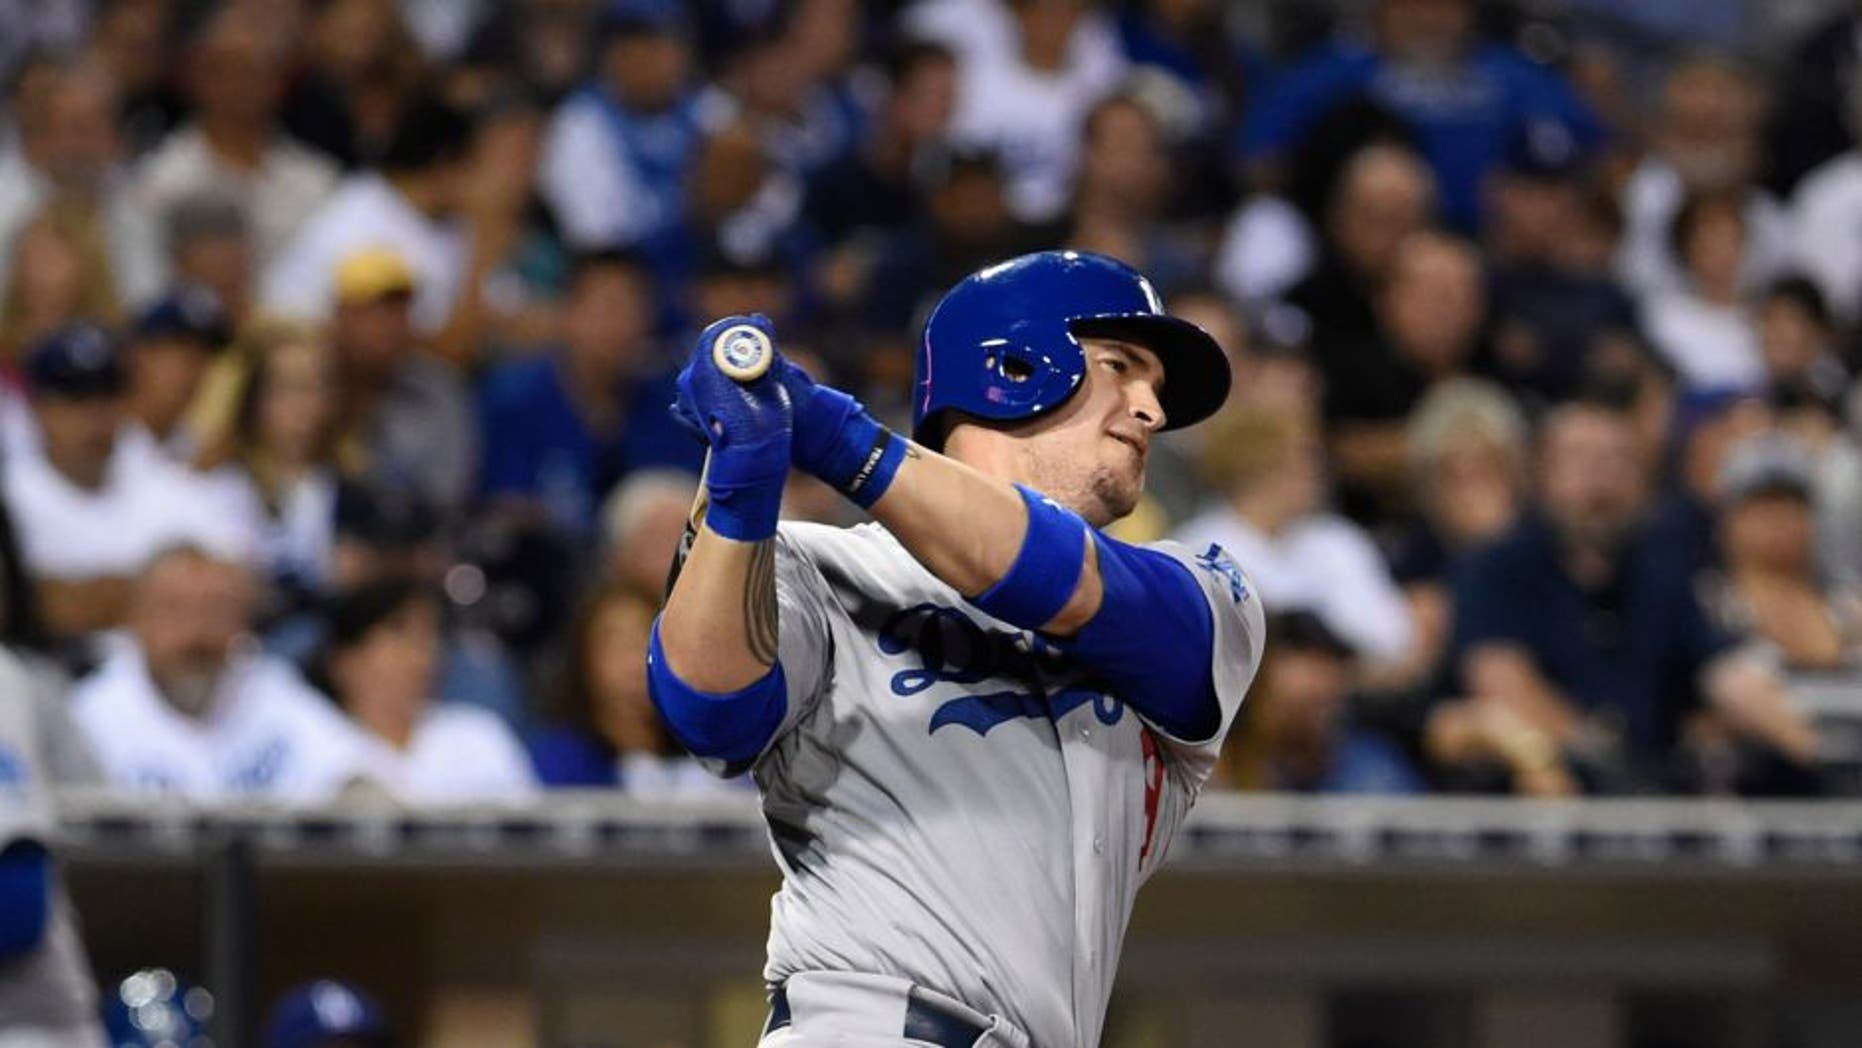 SAN DIEGO, CA - SEPTEMBER 3: Yasmani Grandal #9 of the Los Angeles Dodgers plays during a baseball game against the San Diego Padres at Petco Park September, 3, 2015 in San Diego, California. (Photo by Denis Poroy/Getty Images)